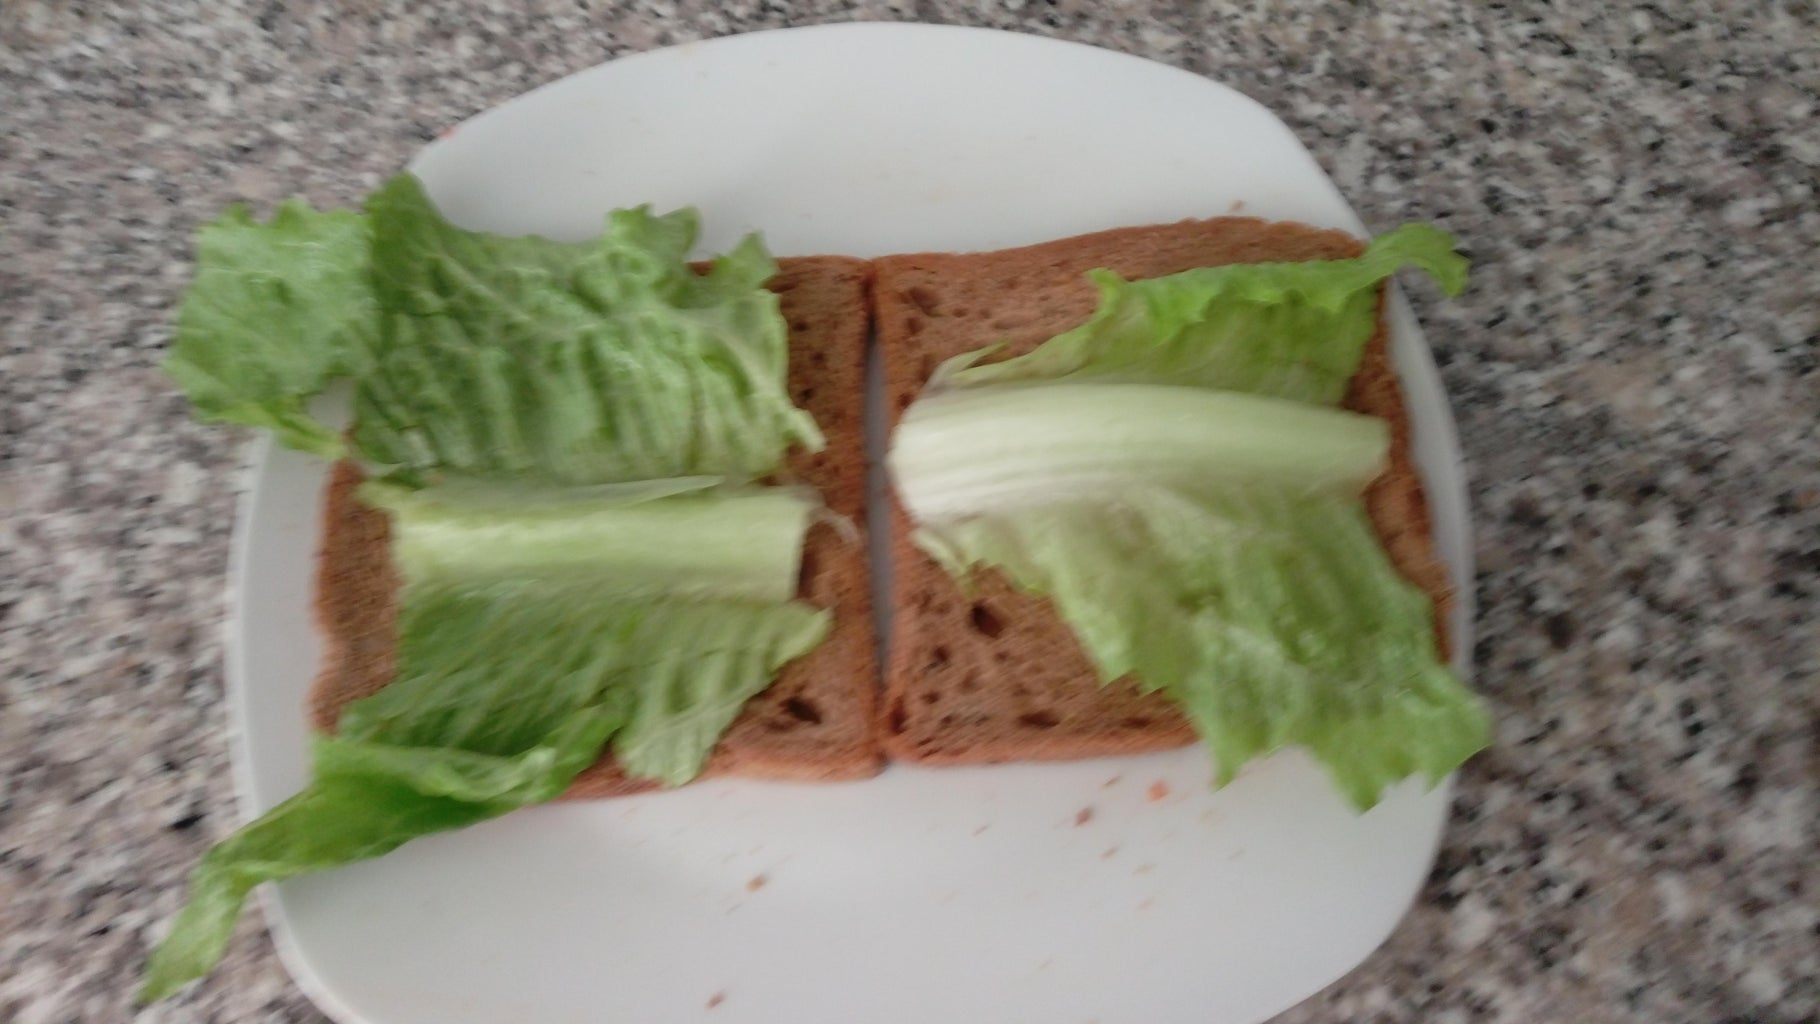 Lettuce Add Some Cheese, Shall We?